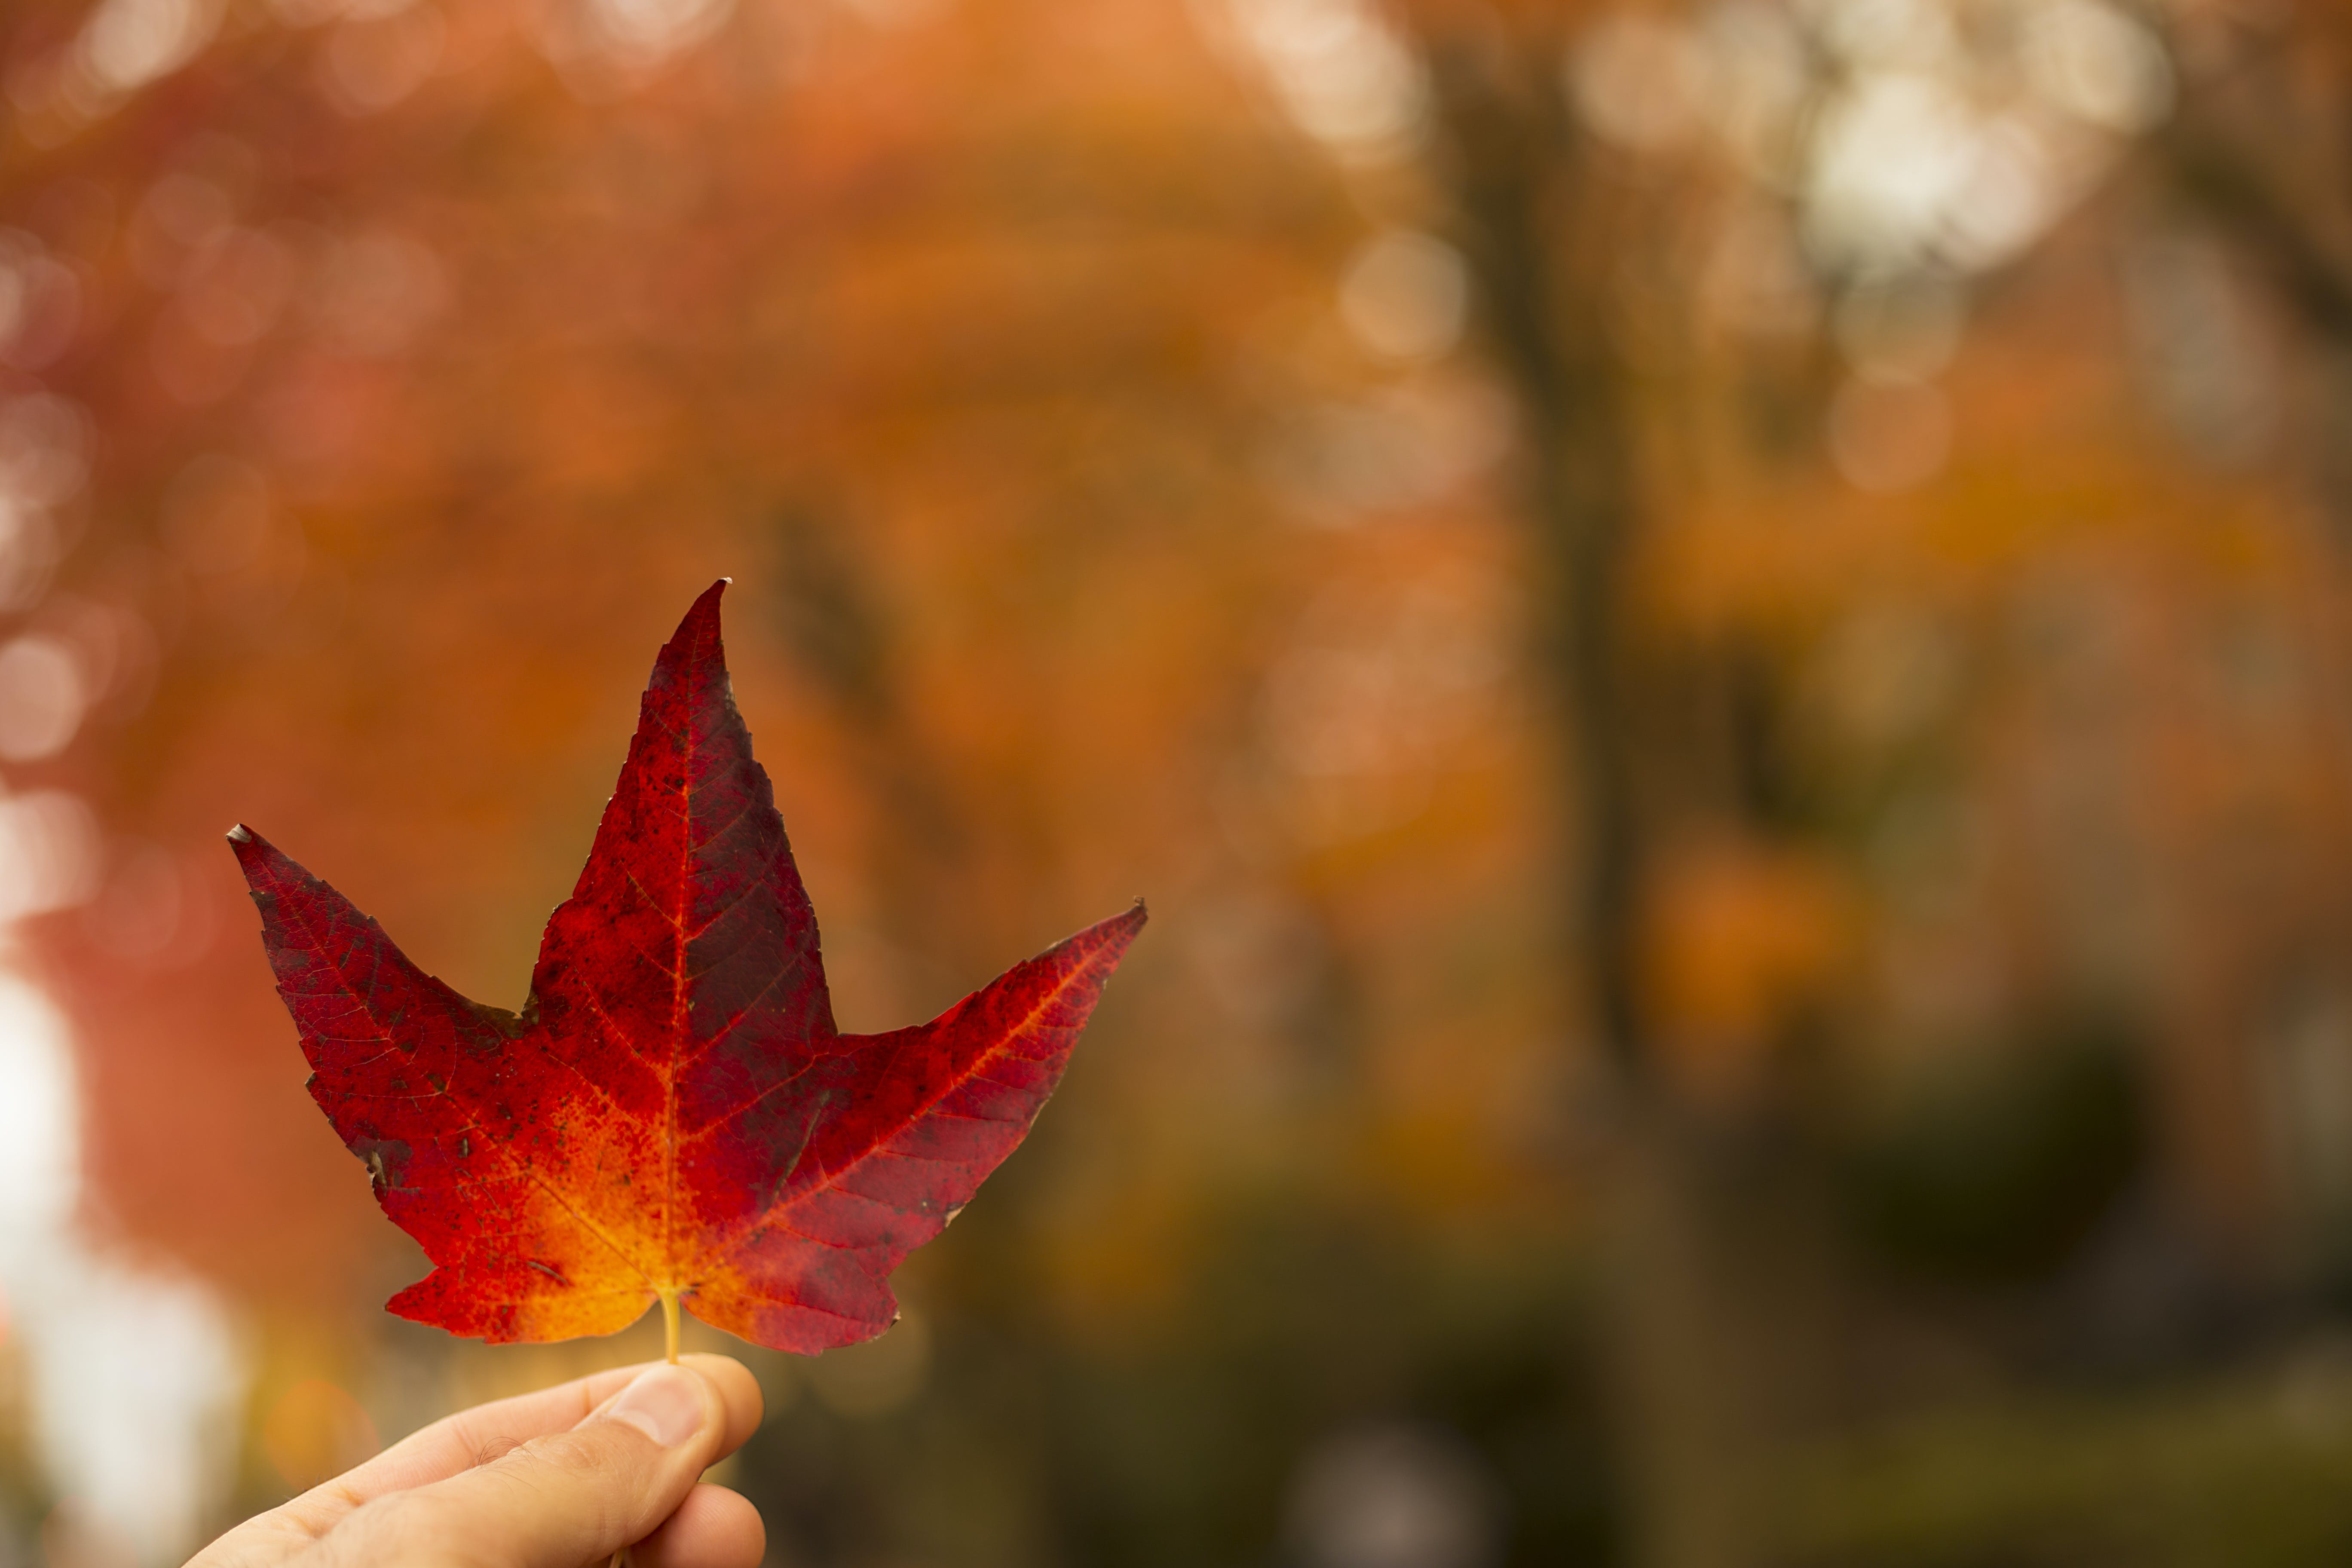 Selective-focus Photography of Person Holding Red Maple Leaf